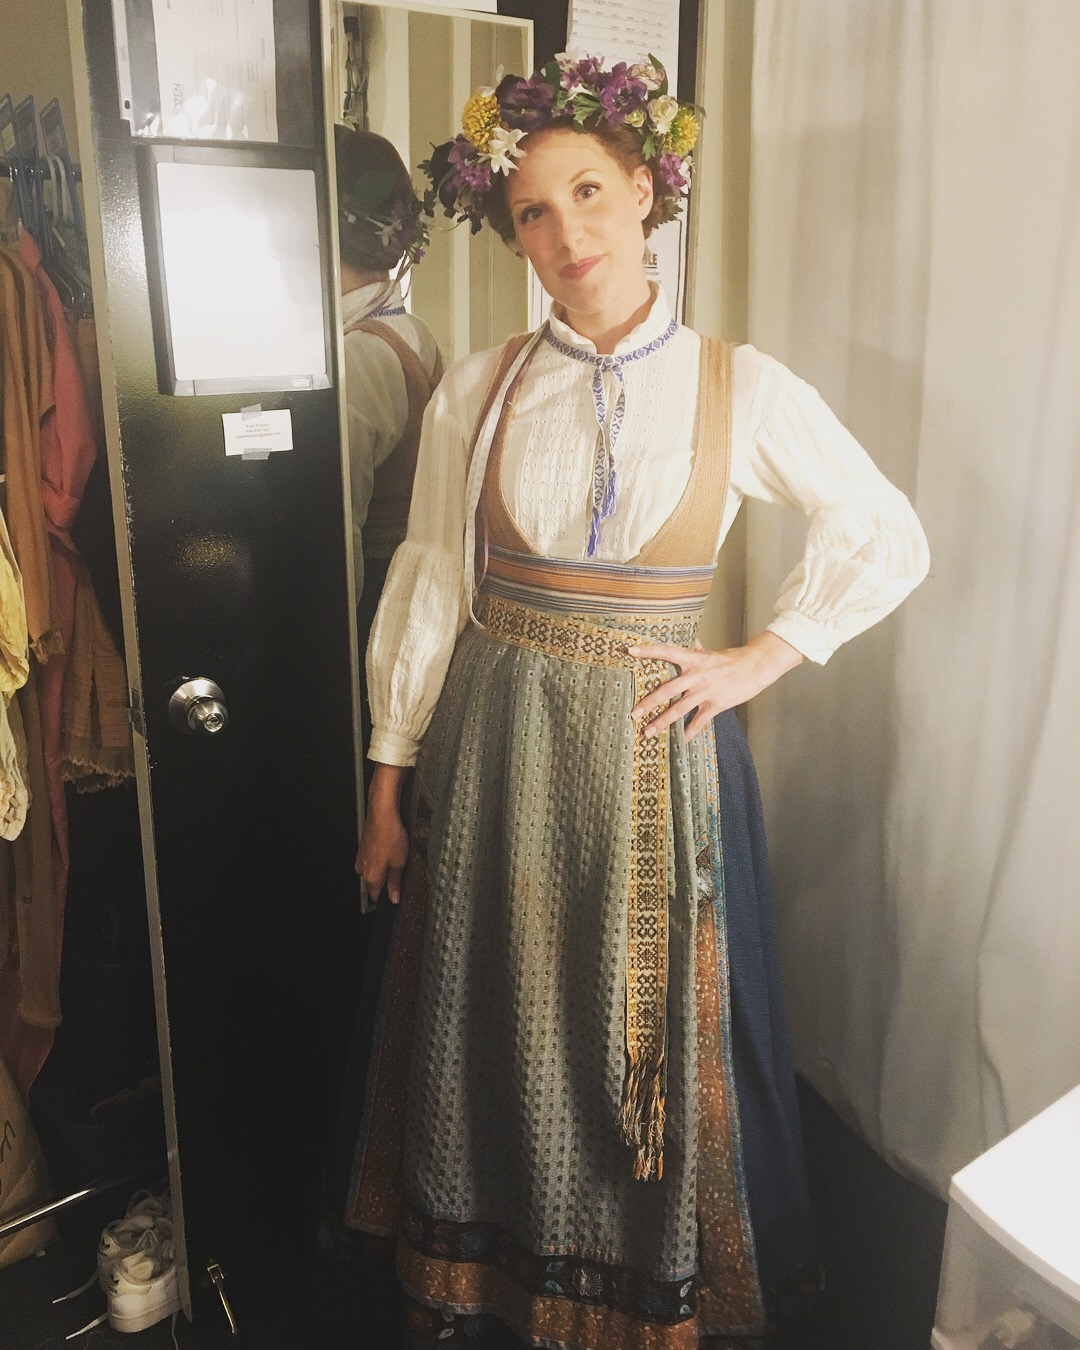 Kate Bailey backstage at  Frozen